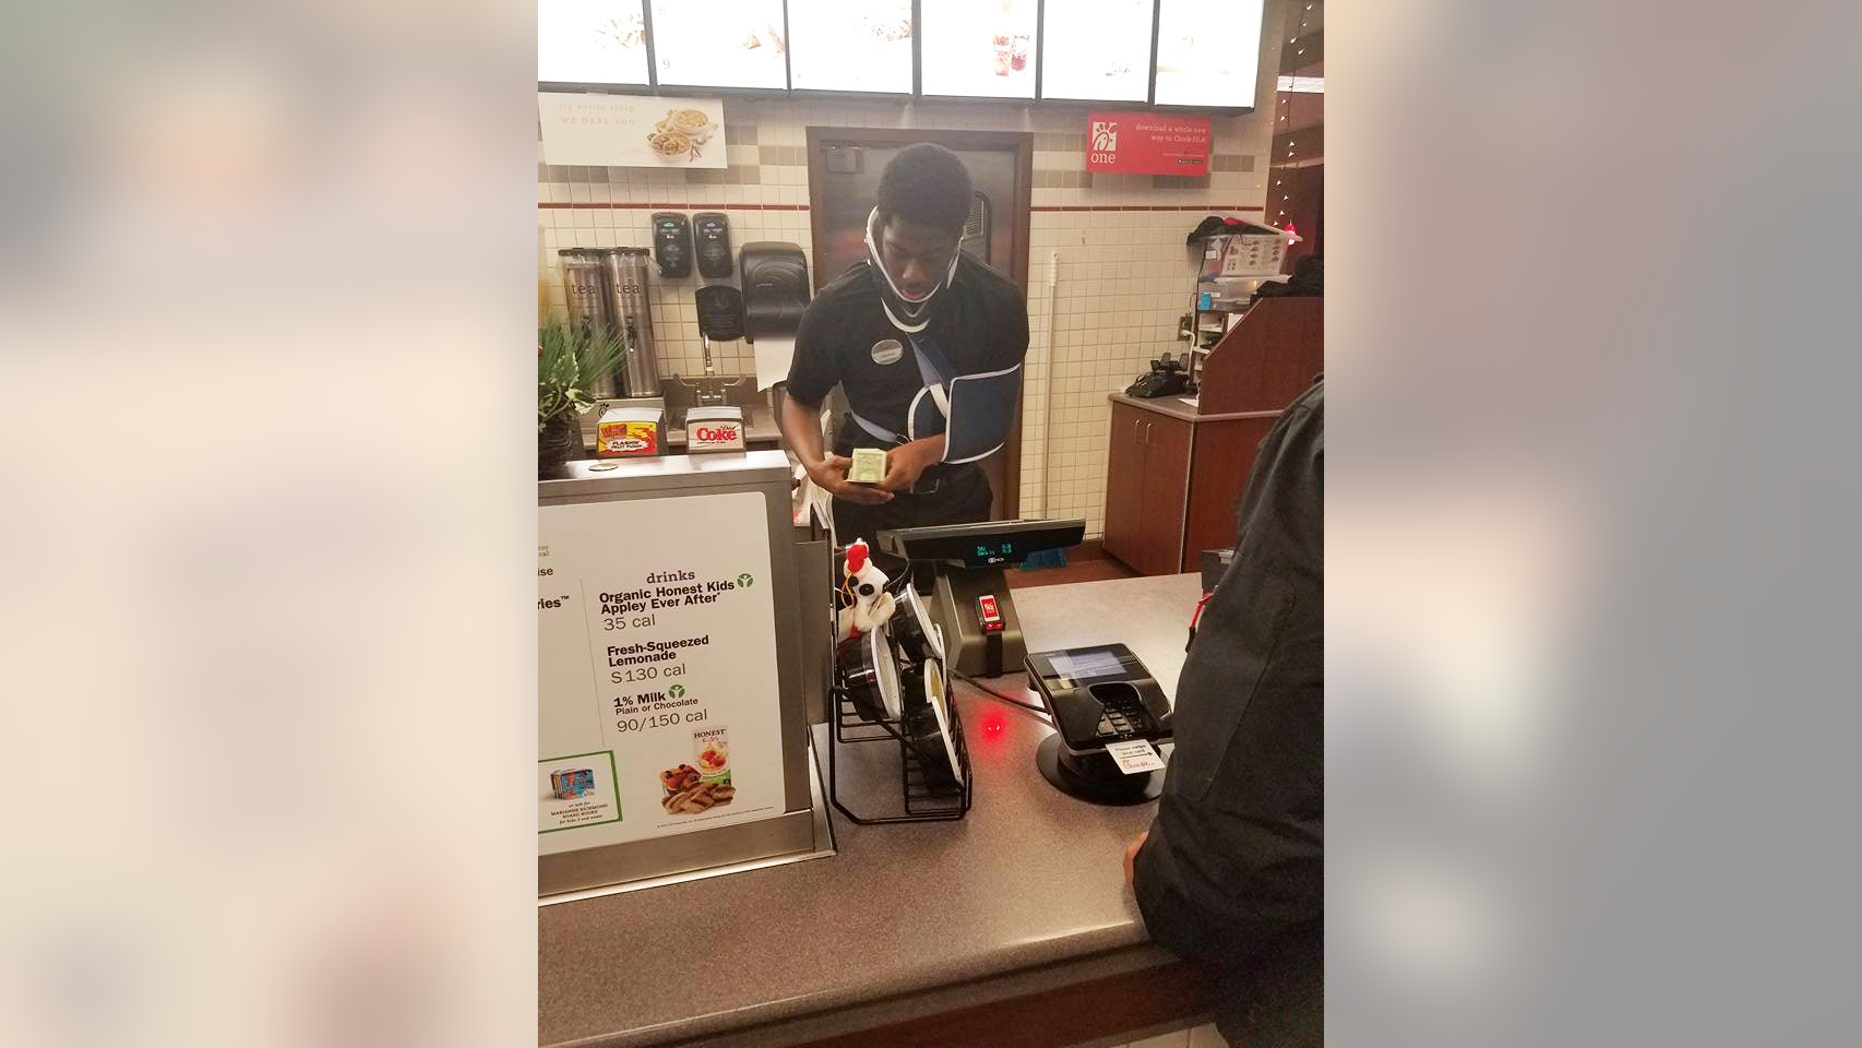 Jakeem Tyler, who was recently injured in a car accident, returned to work at Chick-fil-A because he didn't want to let his fellow workers down.